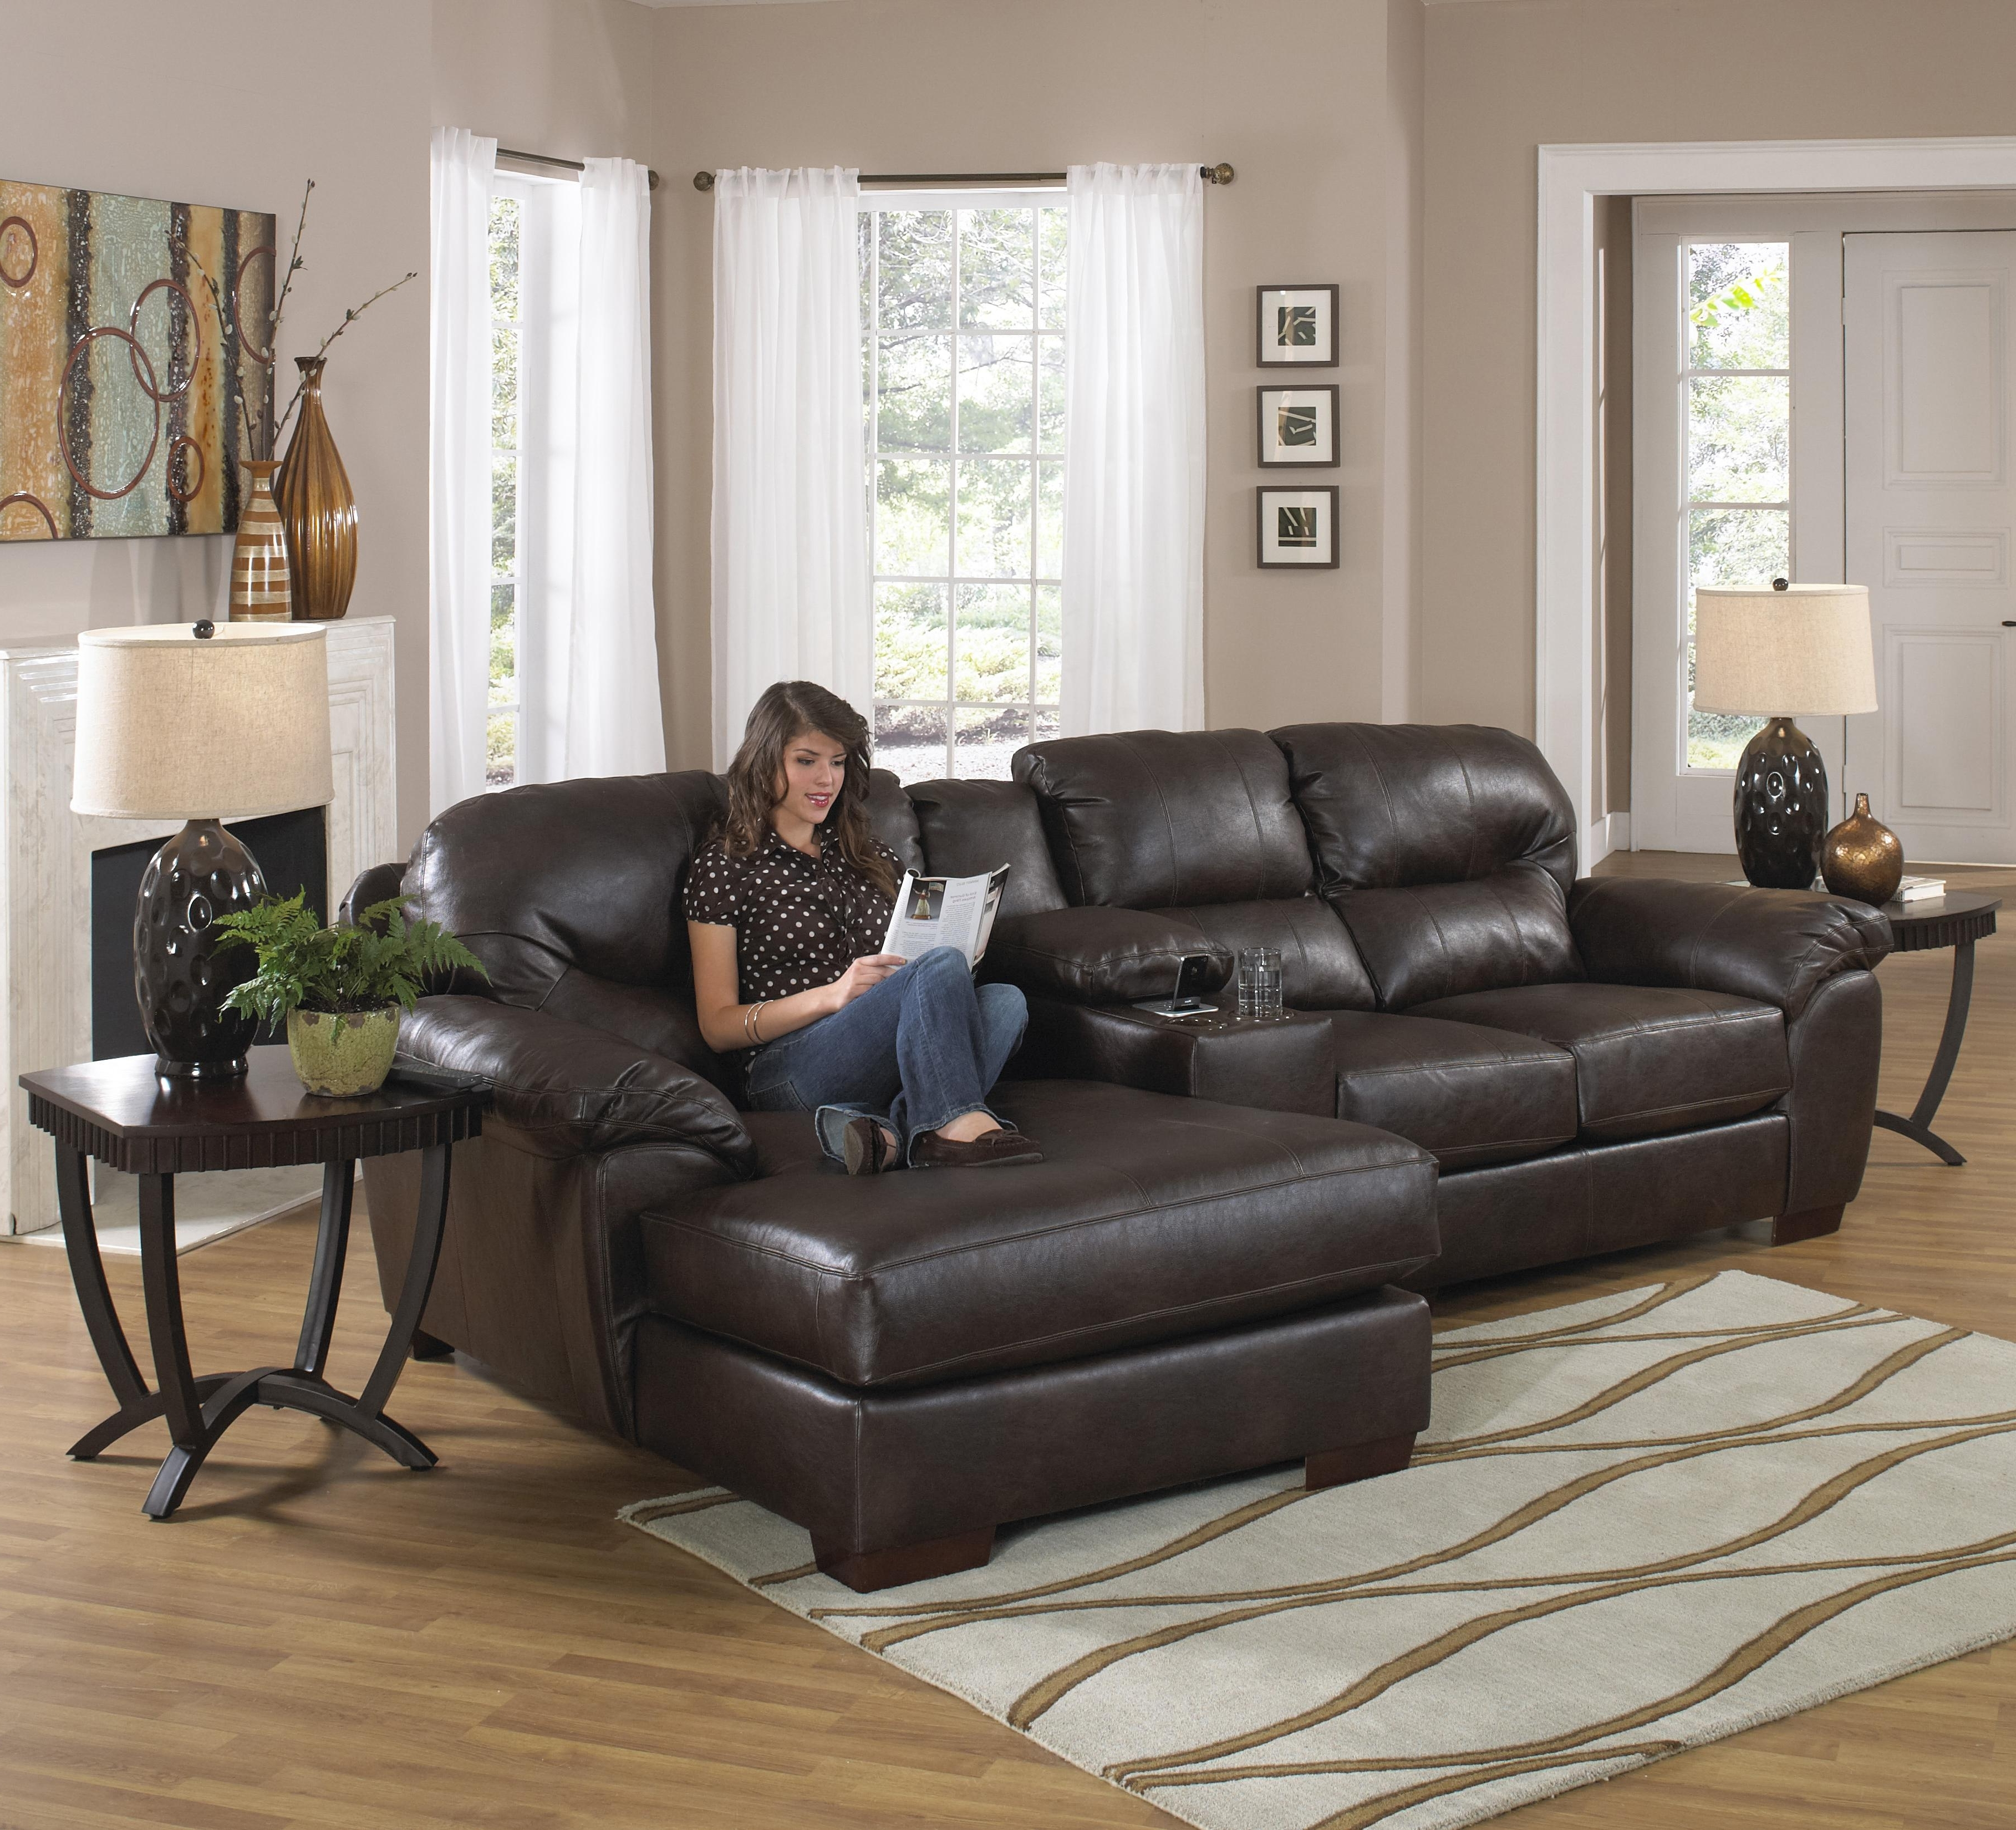 Most Recent Three Seat Sectional Sofa With Console And Chaisejackson With Long Chaise Sofas (View 19 of 20)